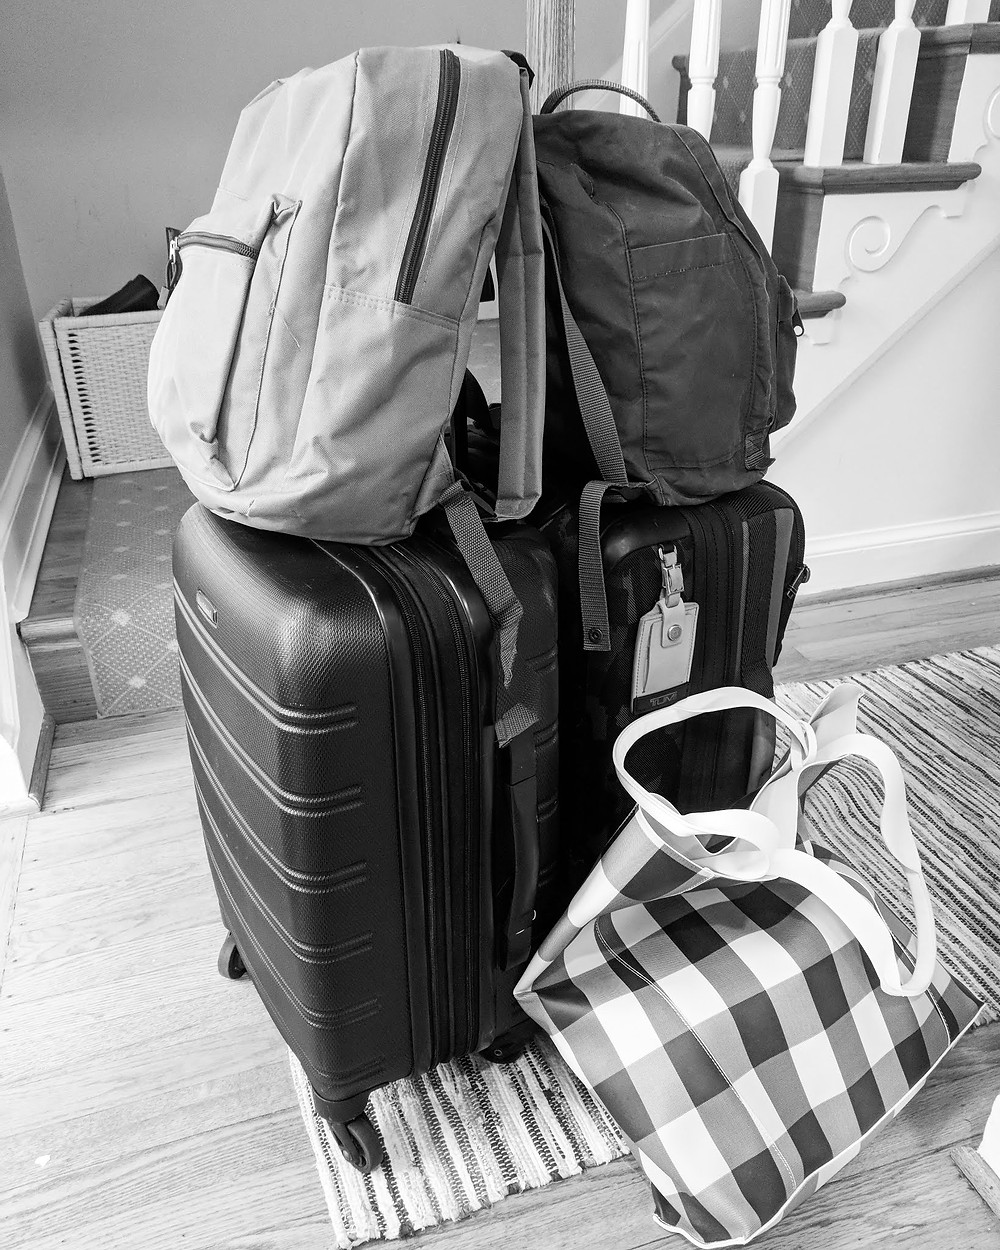 Travel light to avoid needless baggage stress